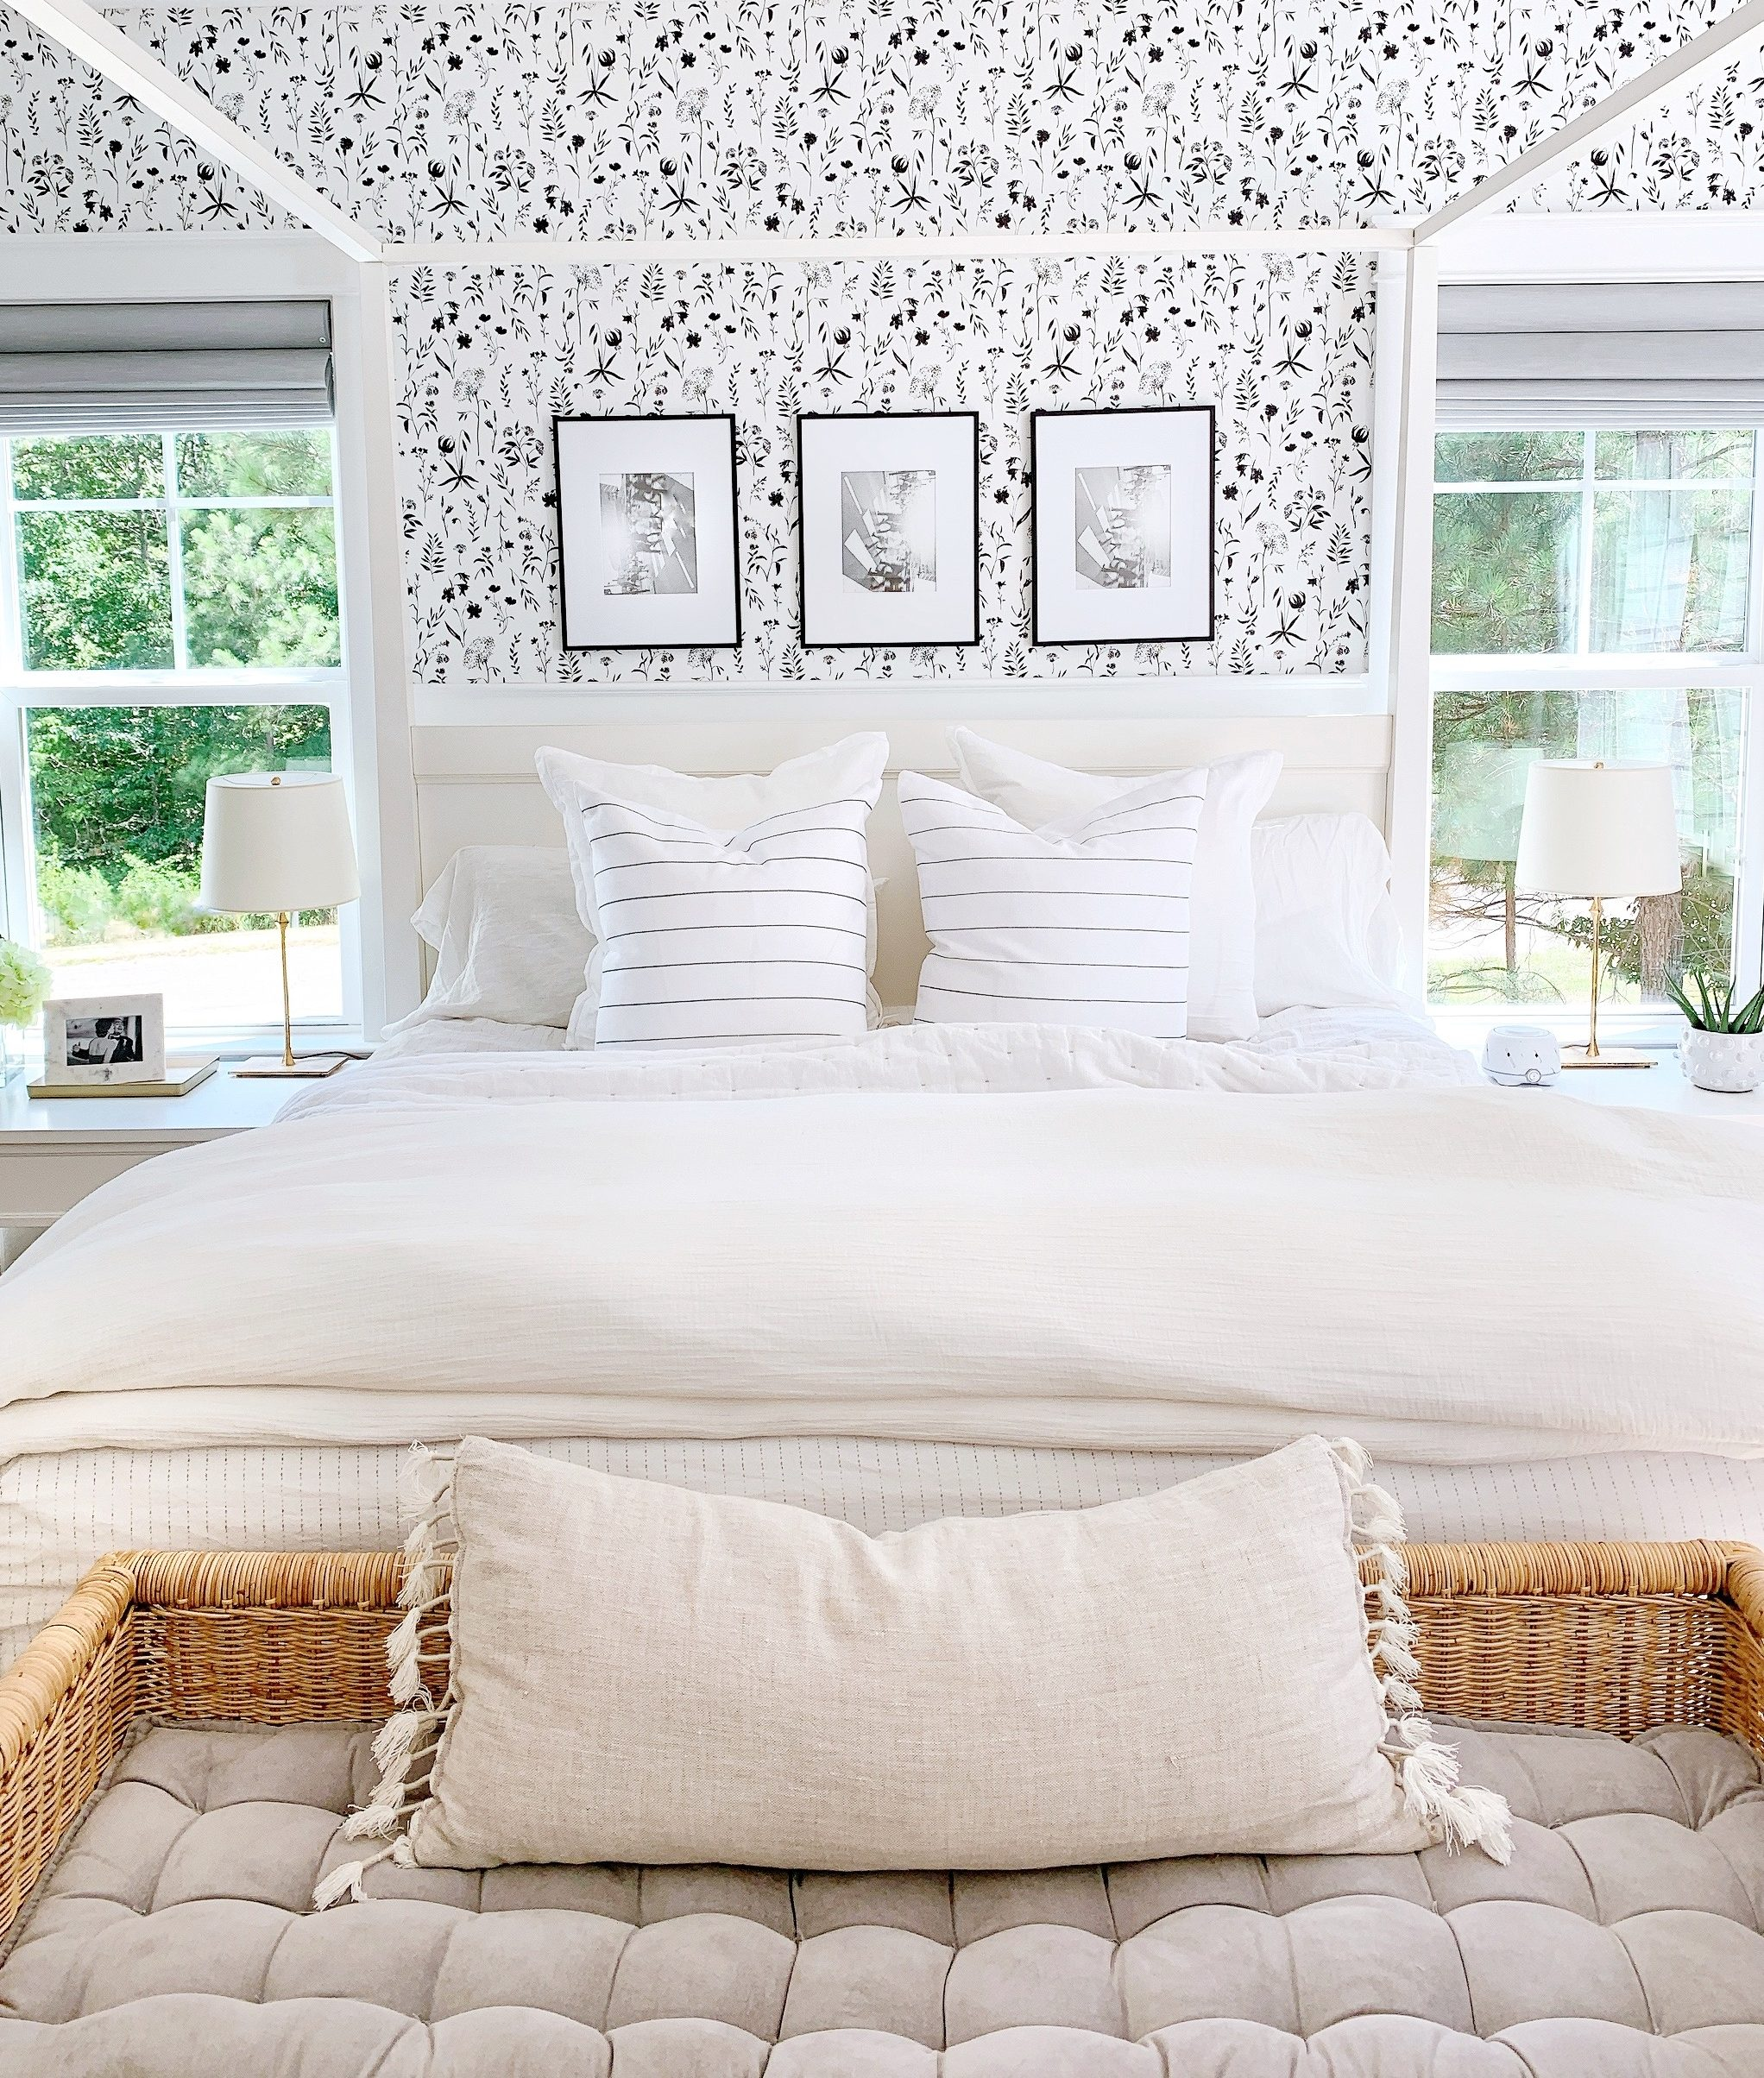 black and white floral wallpaper on a bedroom wall